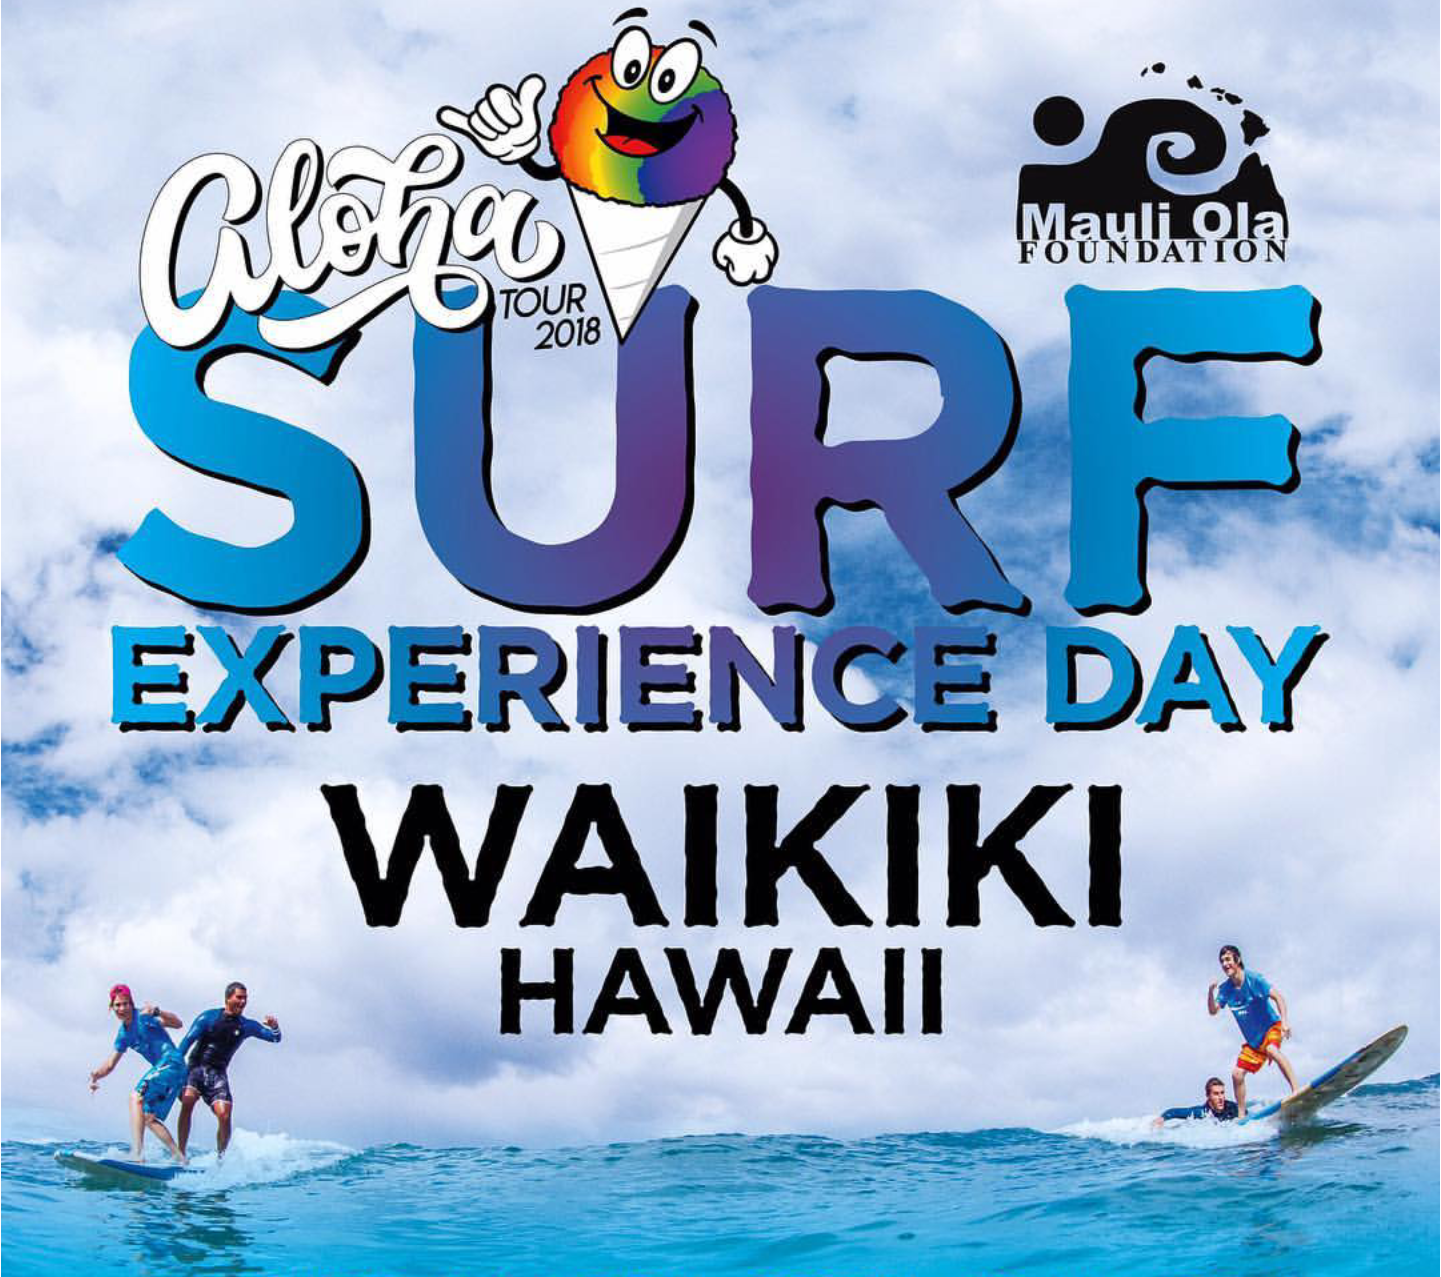 mauli-ola-foundation-surf-experience-day-2018